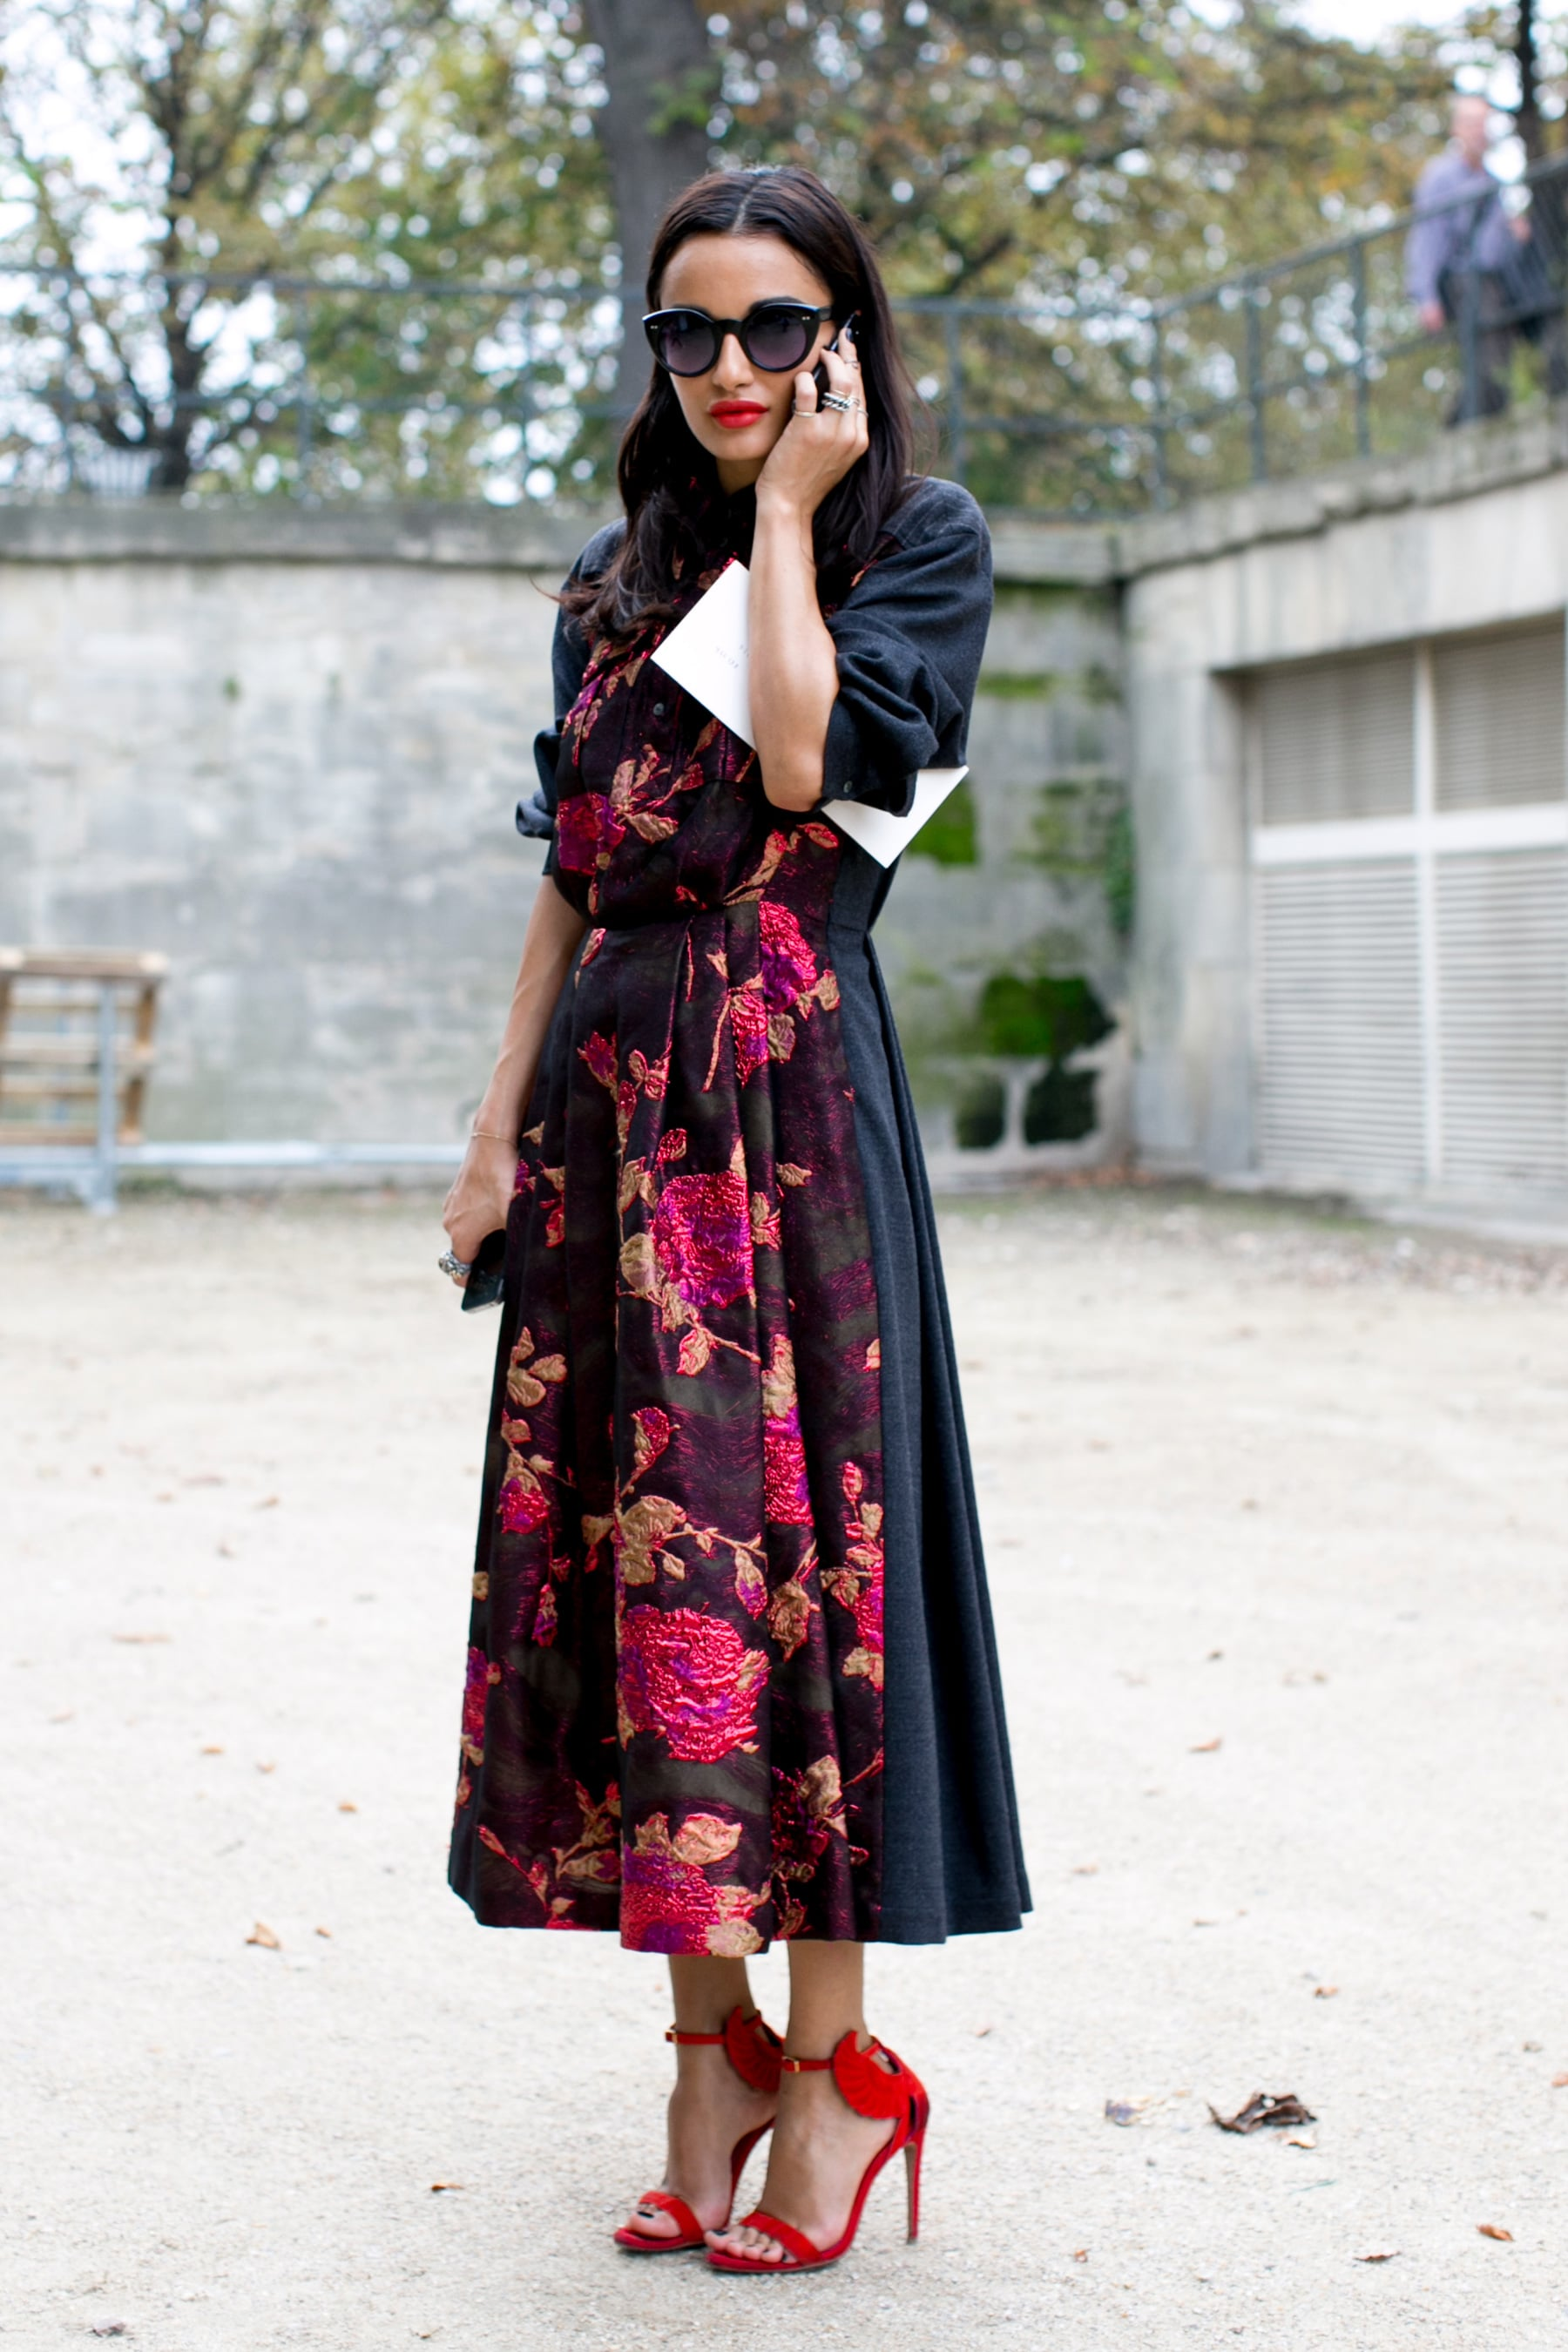 The perfect shade of red lipstick to match those flowers on her dress.